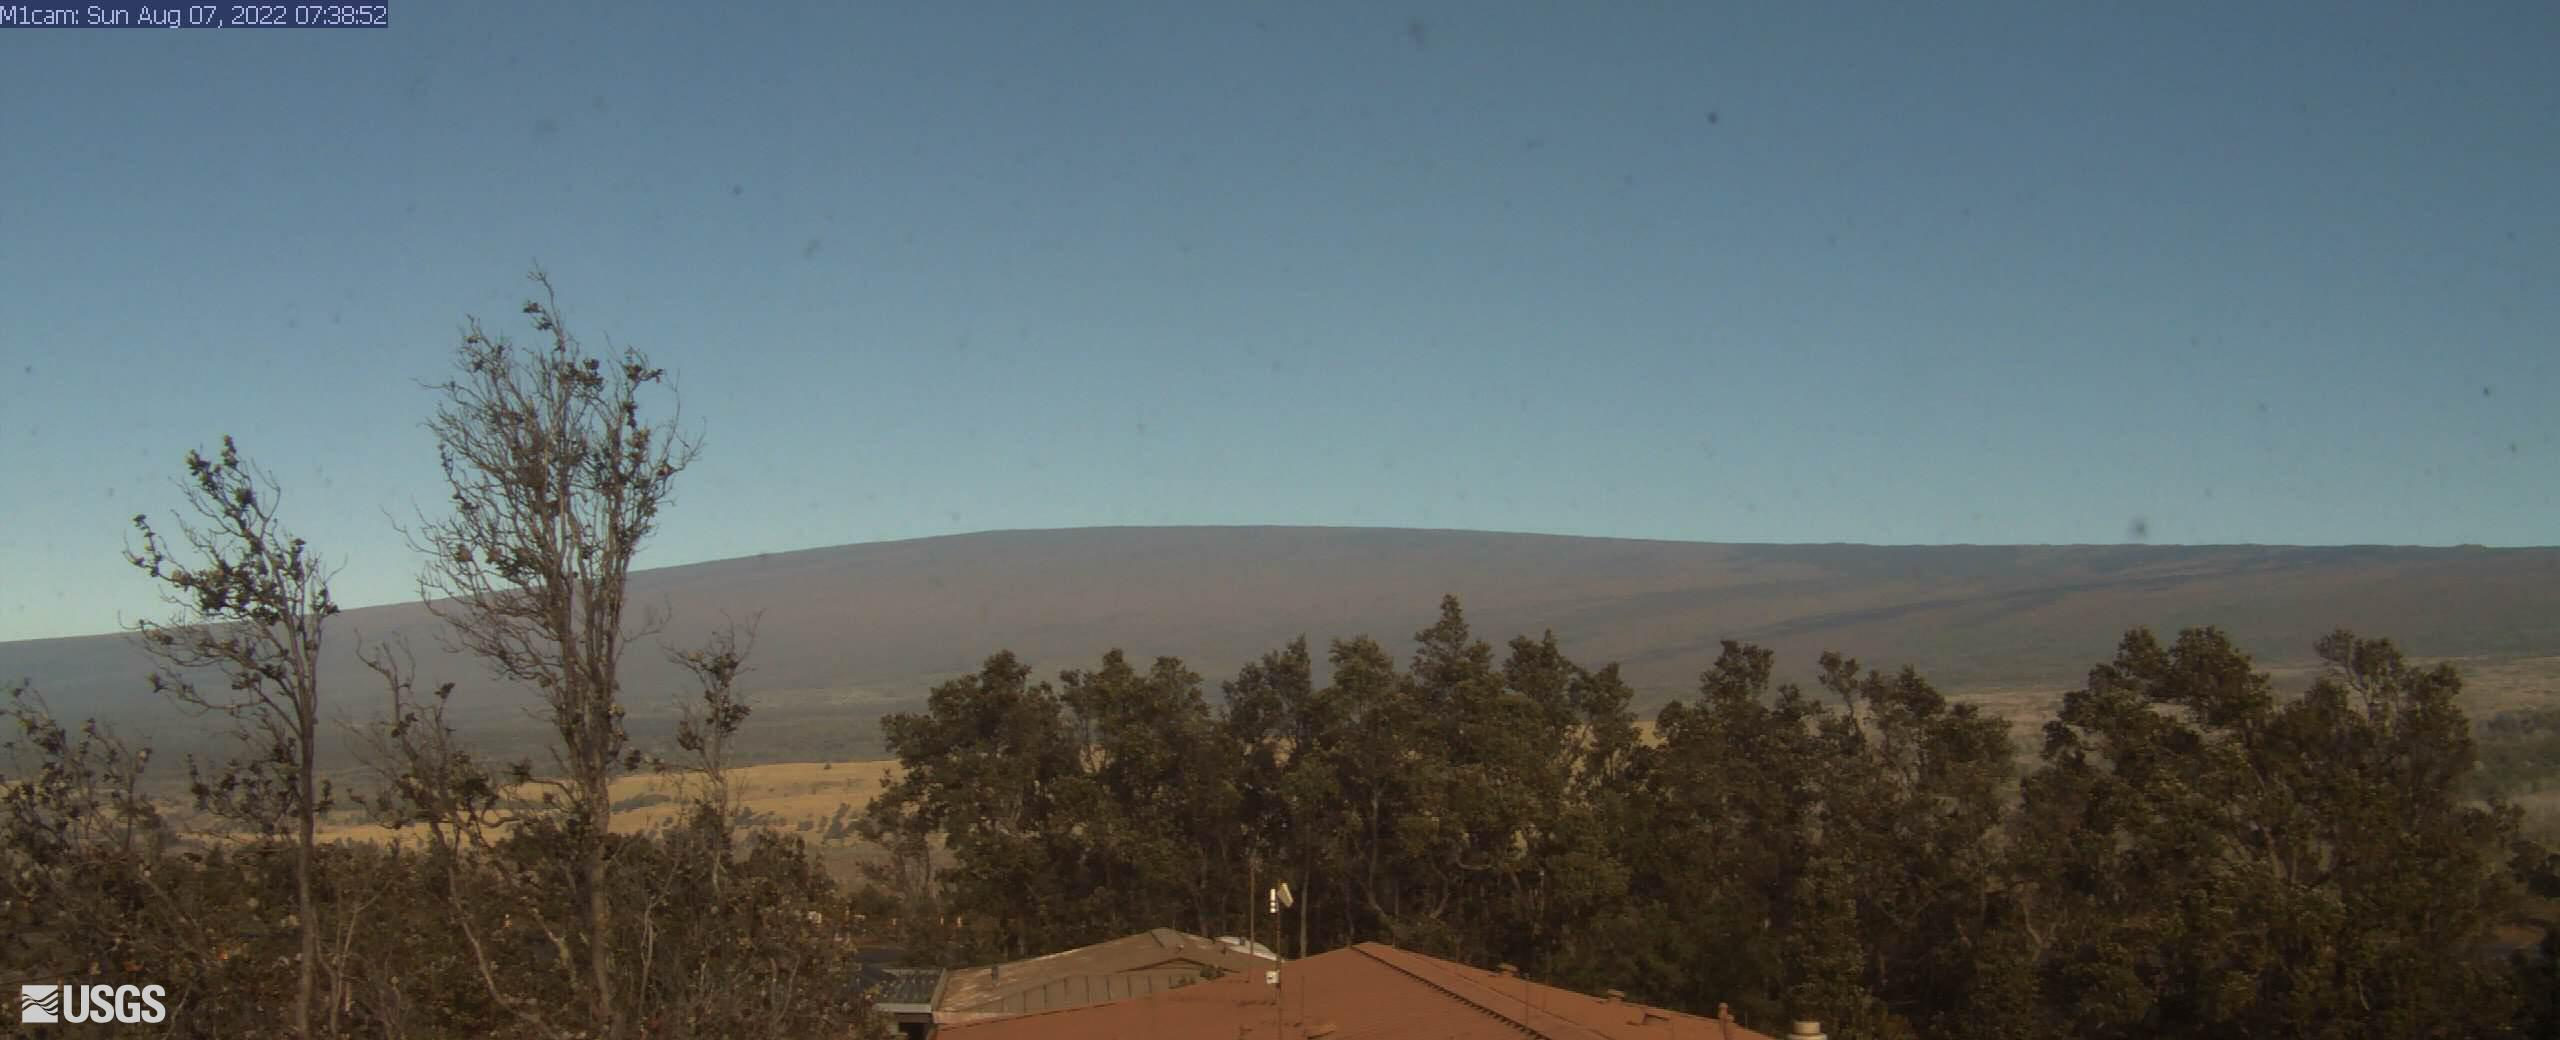 Mauna Loa Northeast Rift Zone from HVO Observation Tower [M1cam] preview image